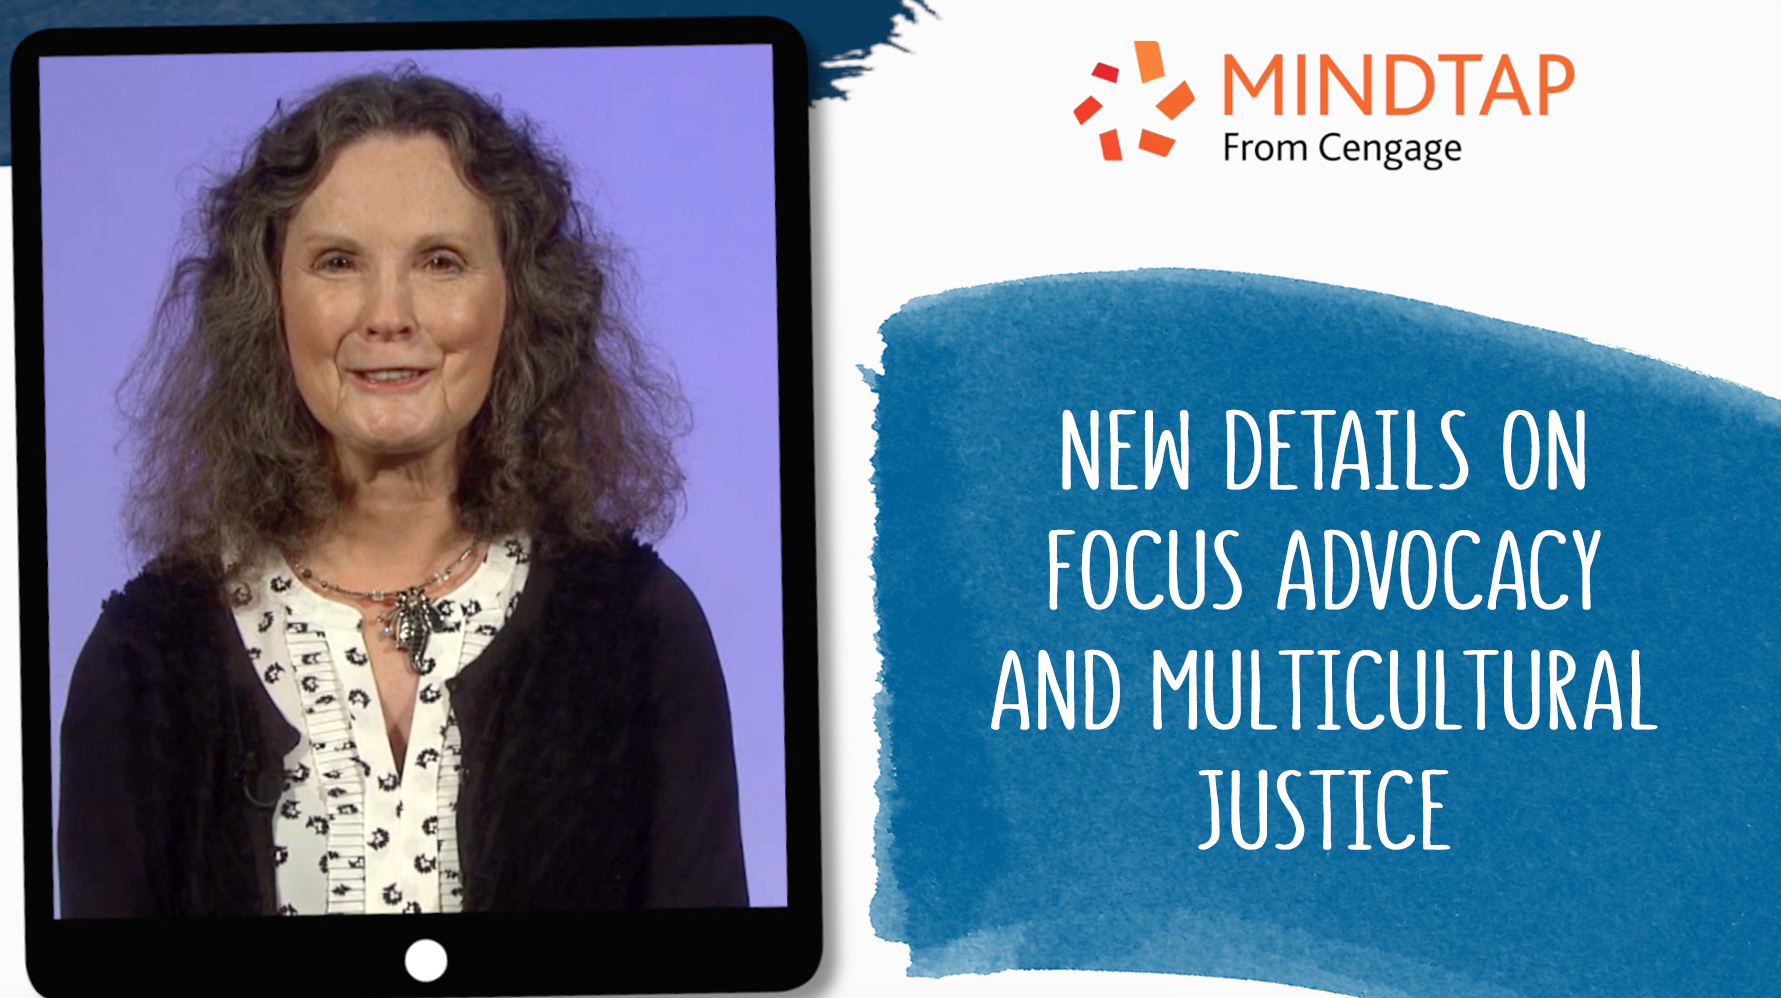 New Details on Focus Advocacy and Multicultural Justice